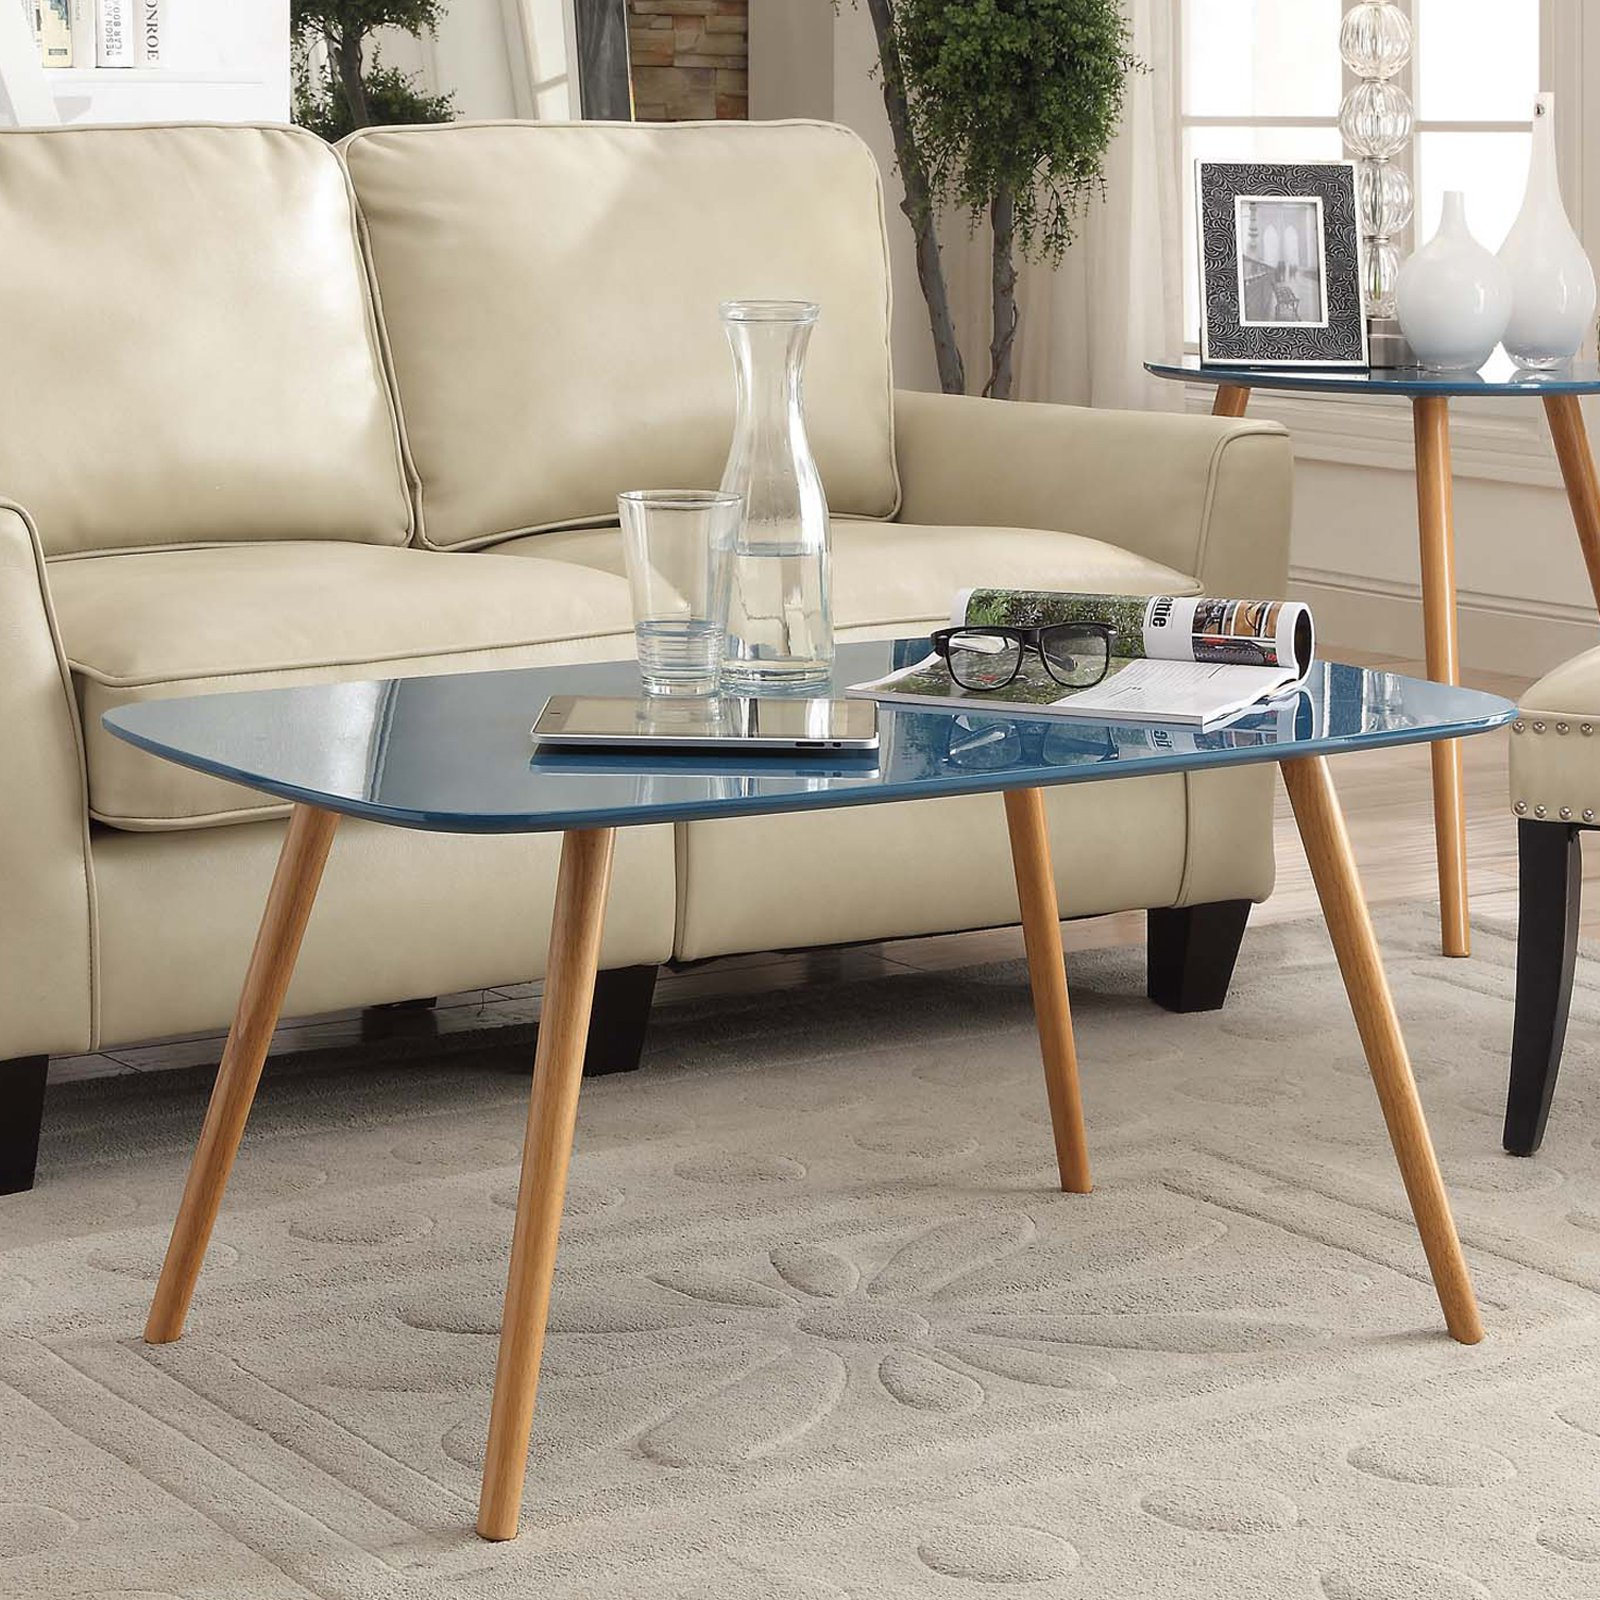 Convenience Concepts No Tools Oslo Coffee Table, Multiple Colors by Convenience Concepts, Inc.